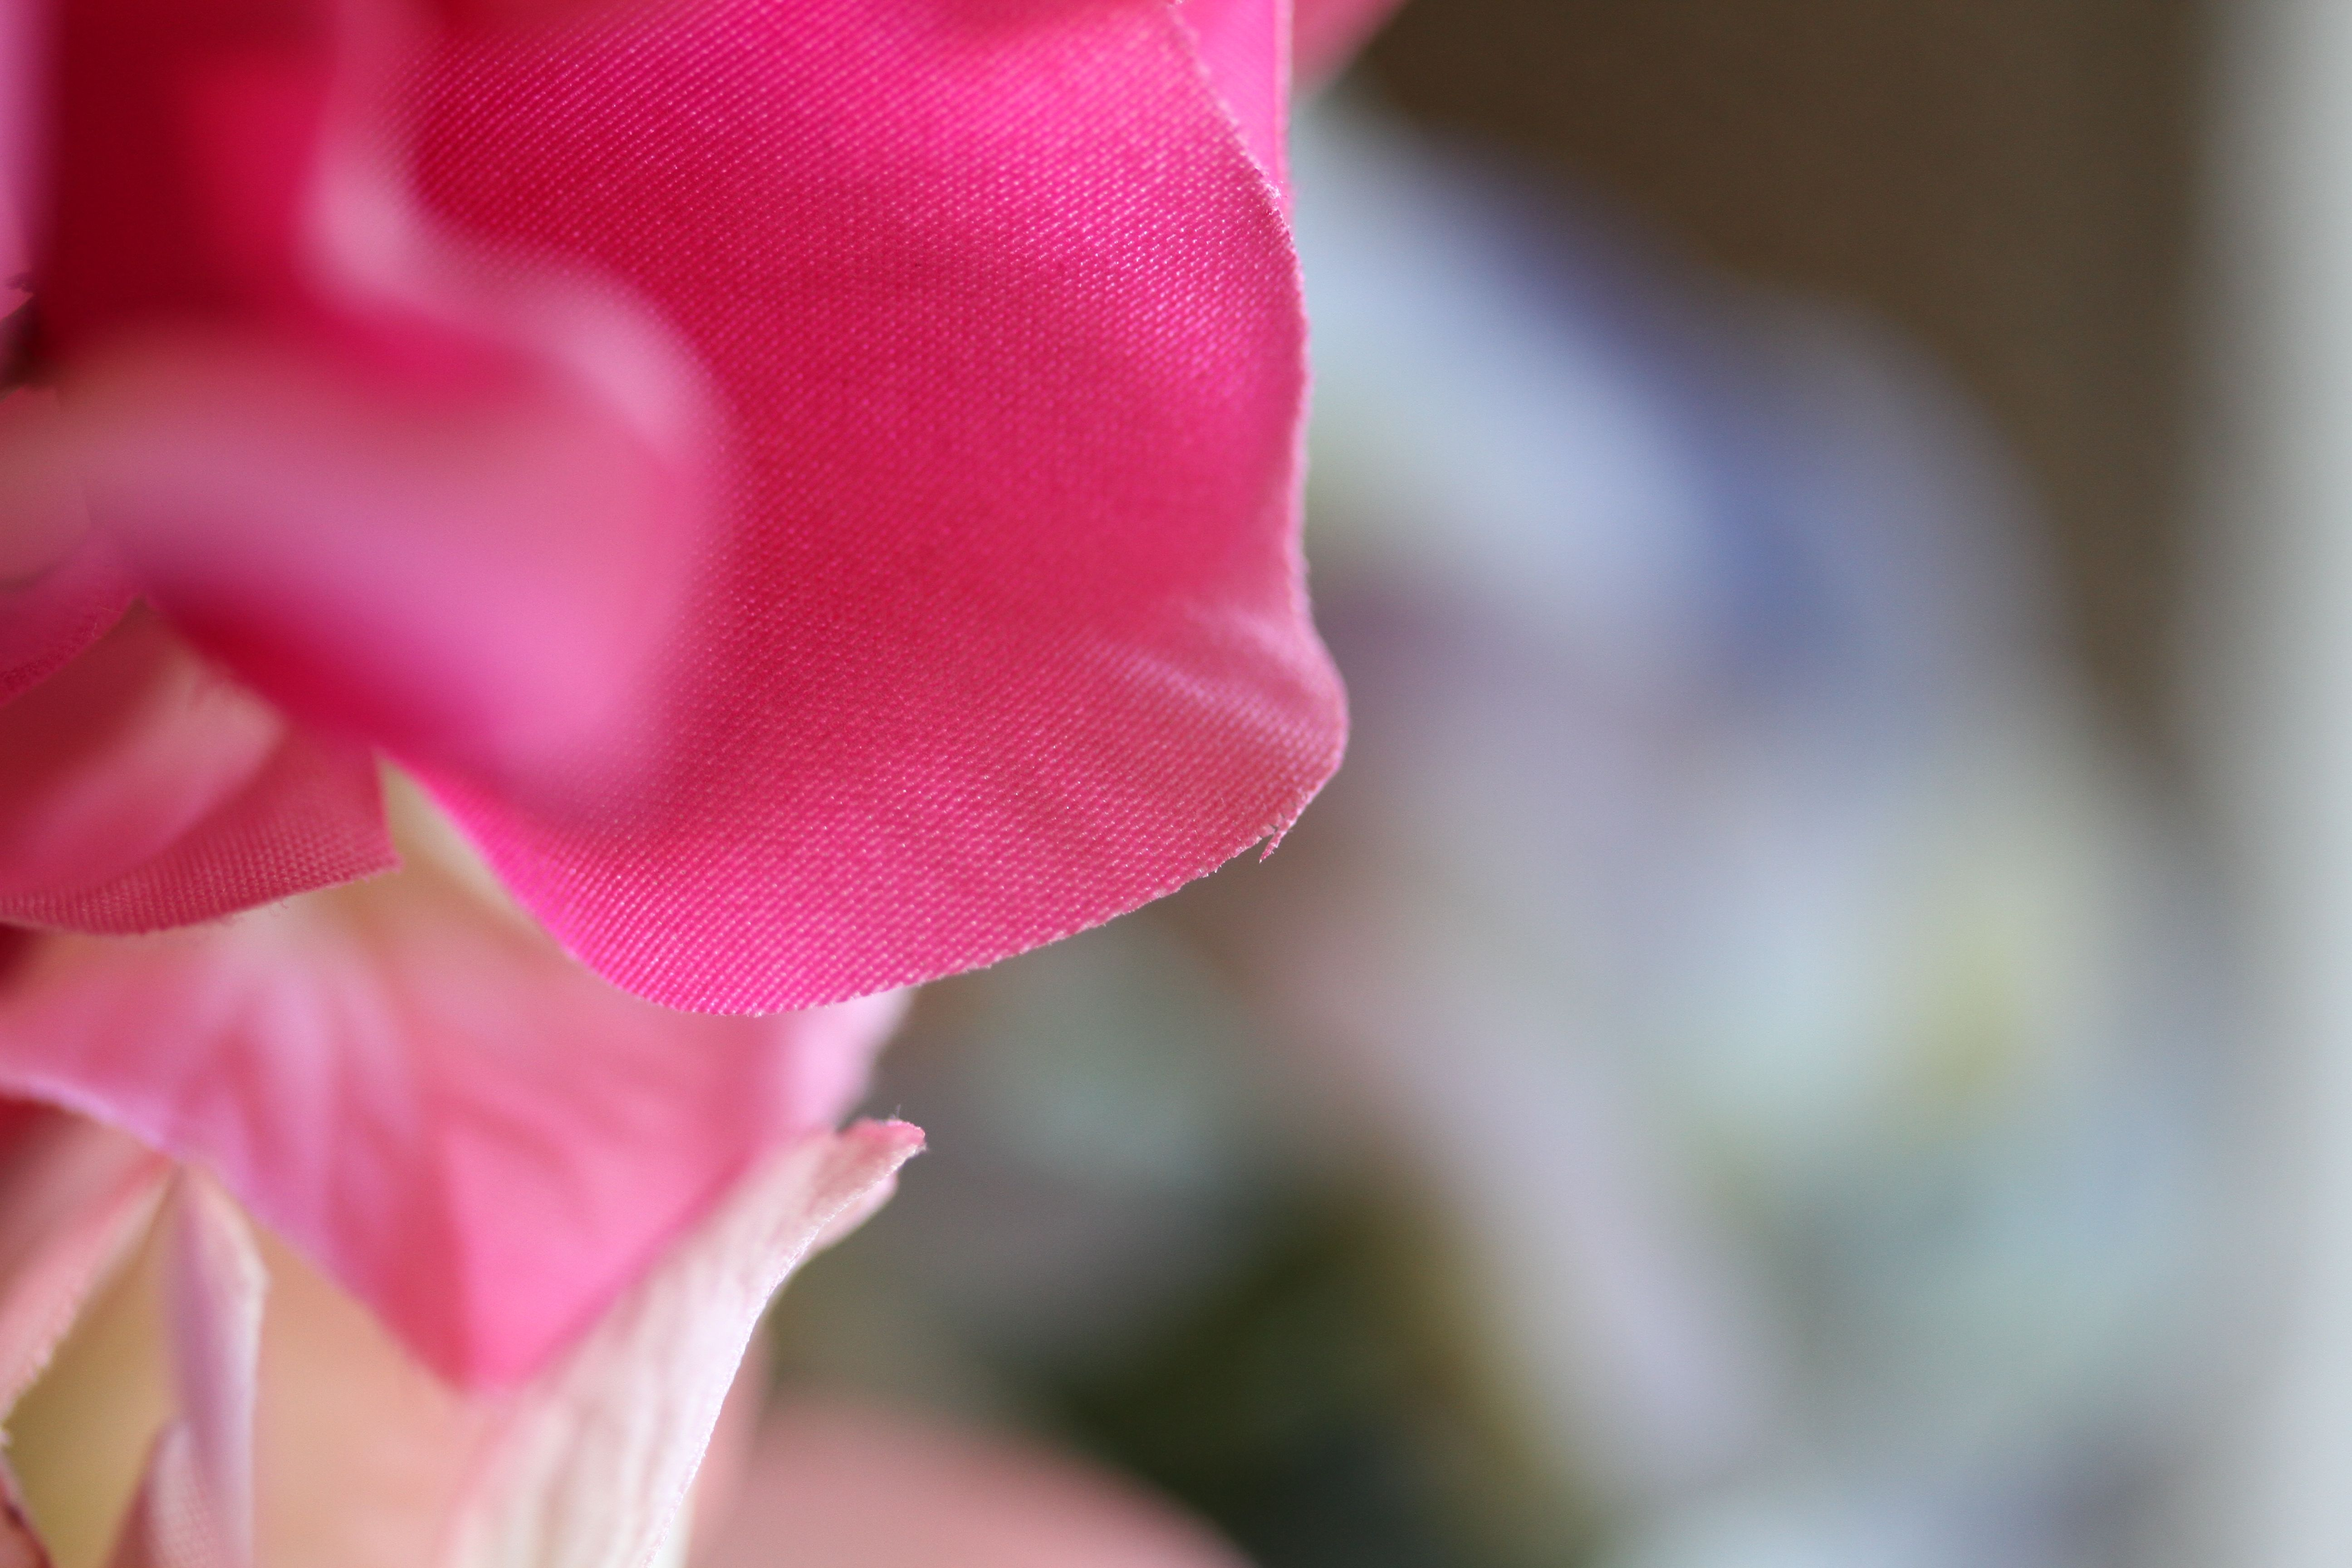 Beauty shot: Or this one. Makes me want to rub my face on the petals.